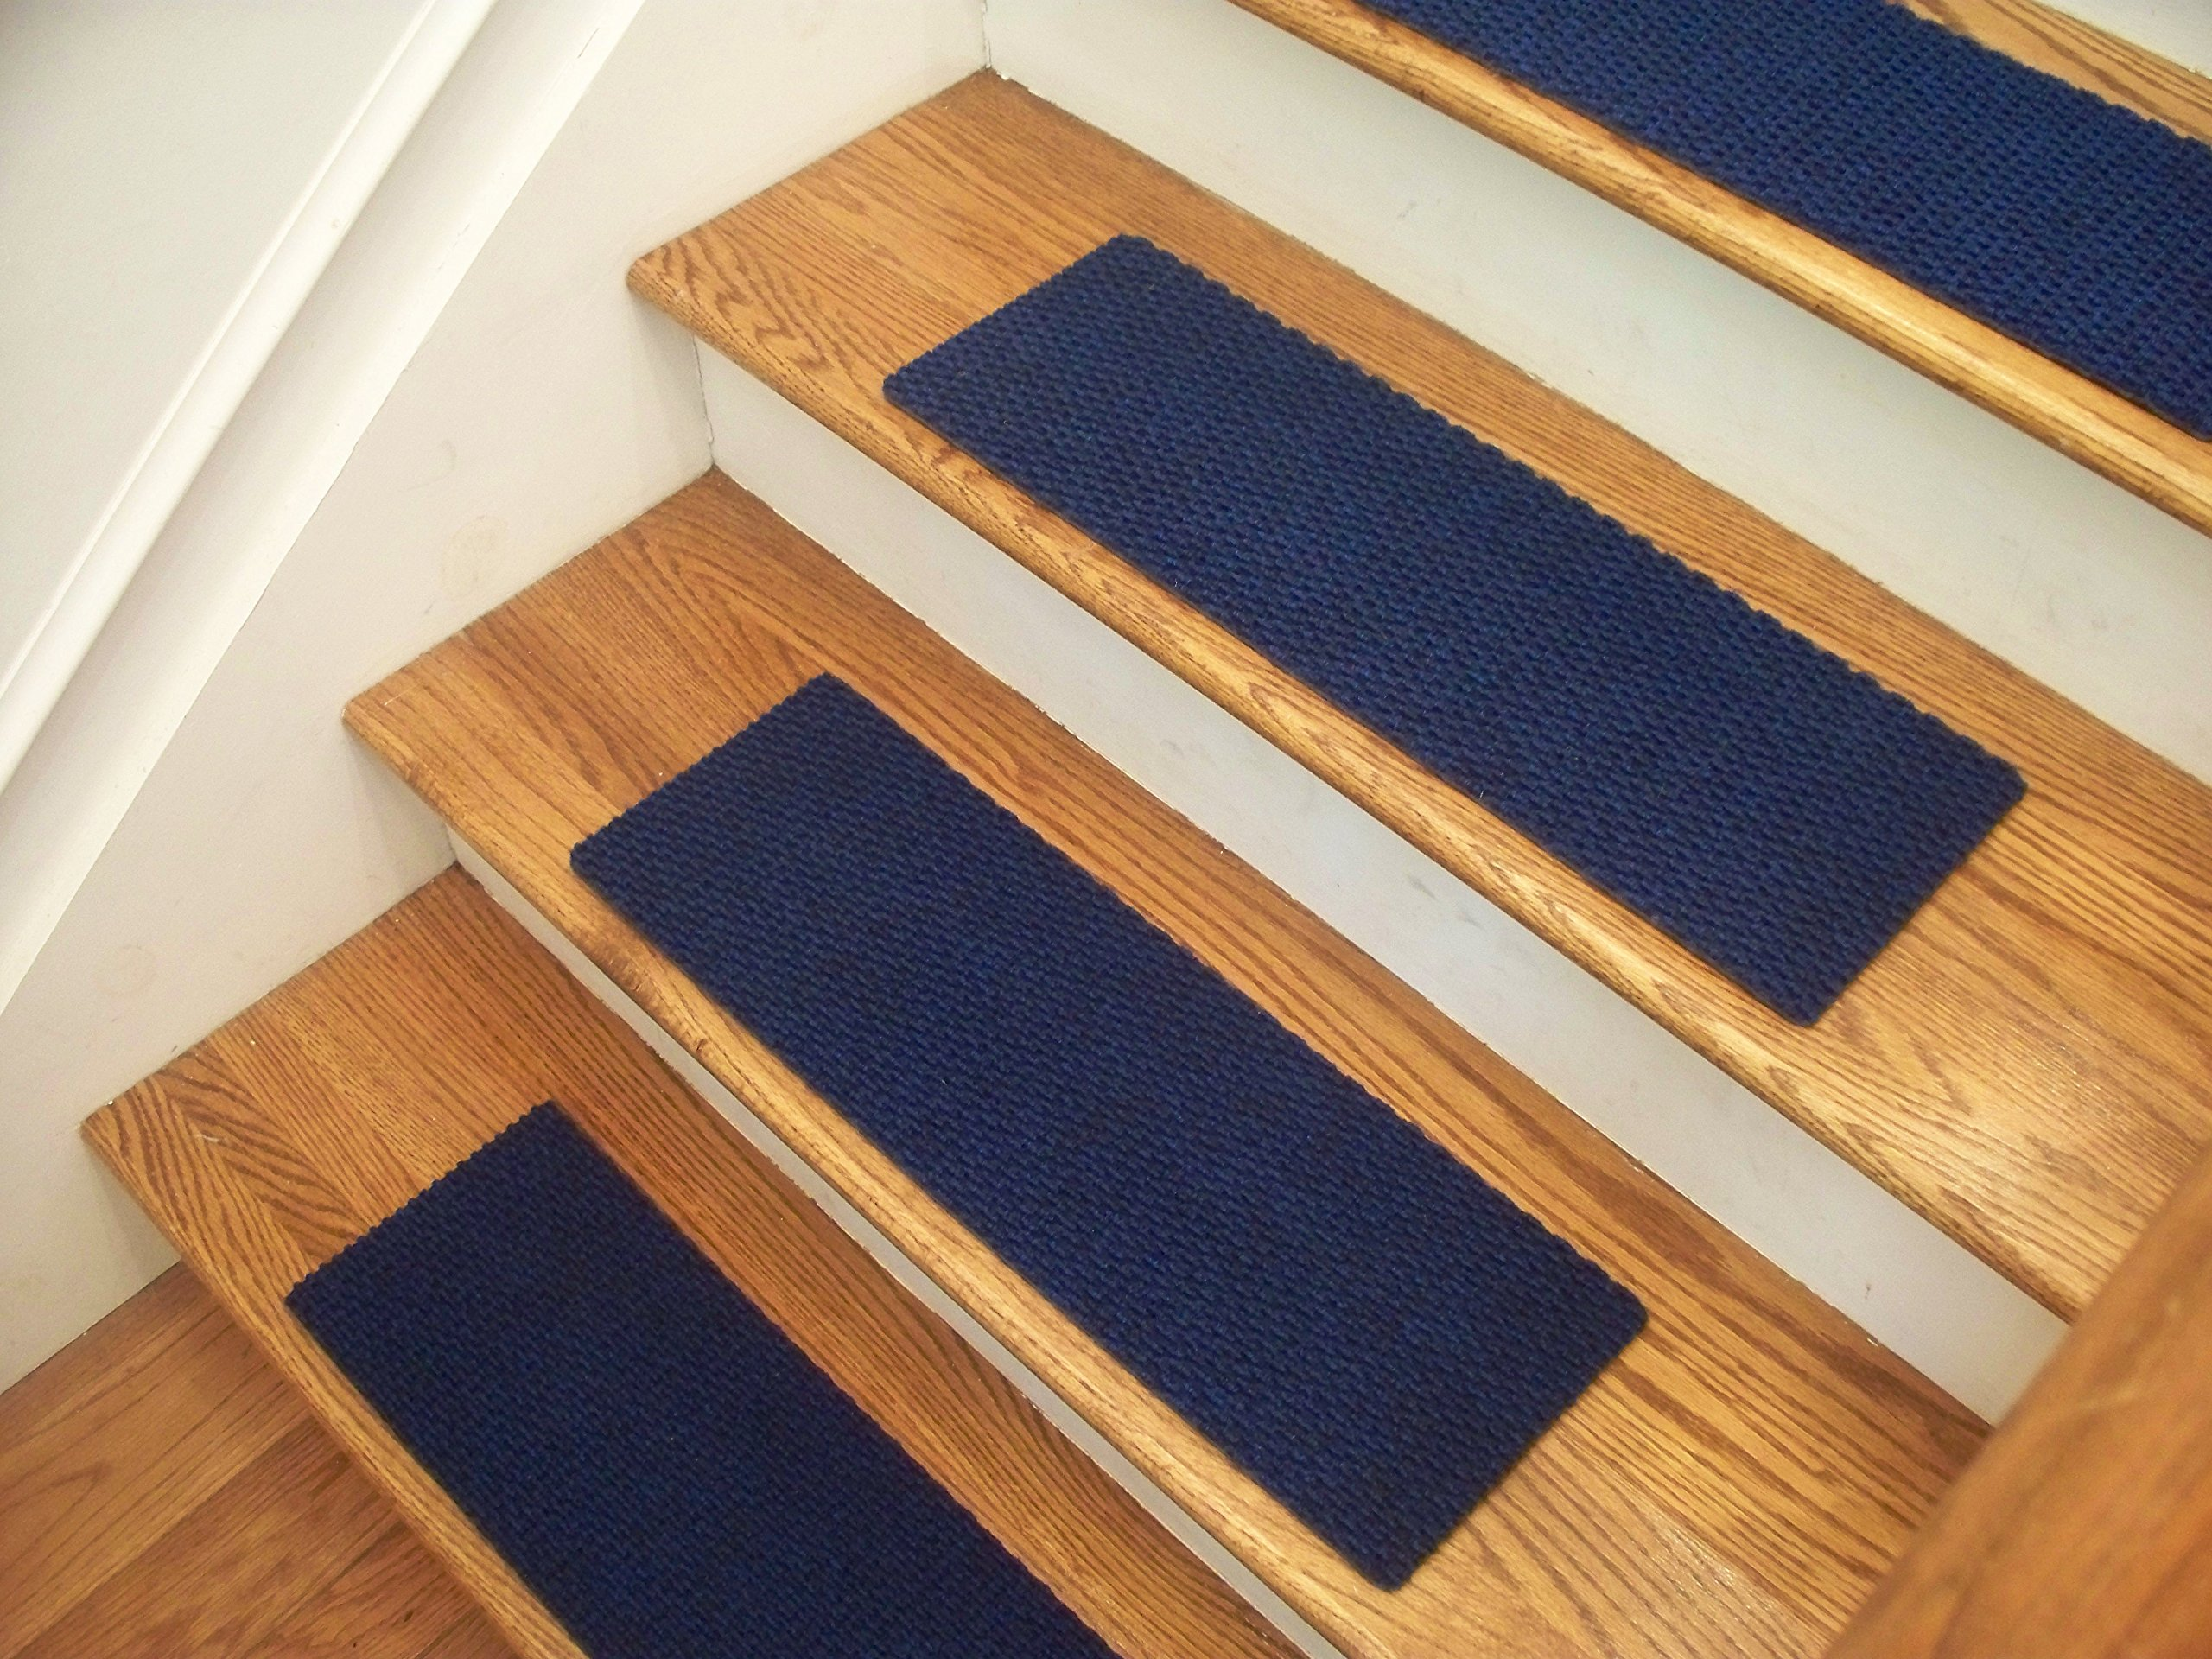 Essential Carpet Stair Treads - Style: Berber - Color: Blue - Size: 24'' x 8'' - Set of 15 by Essential Specialty Products